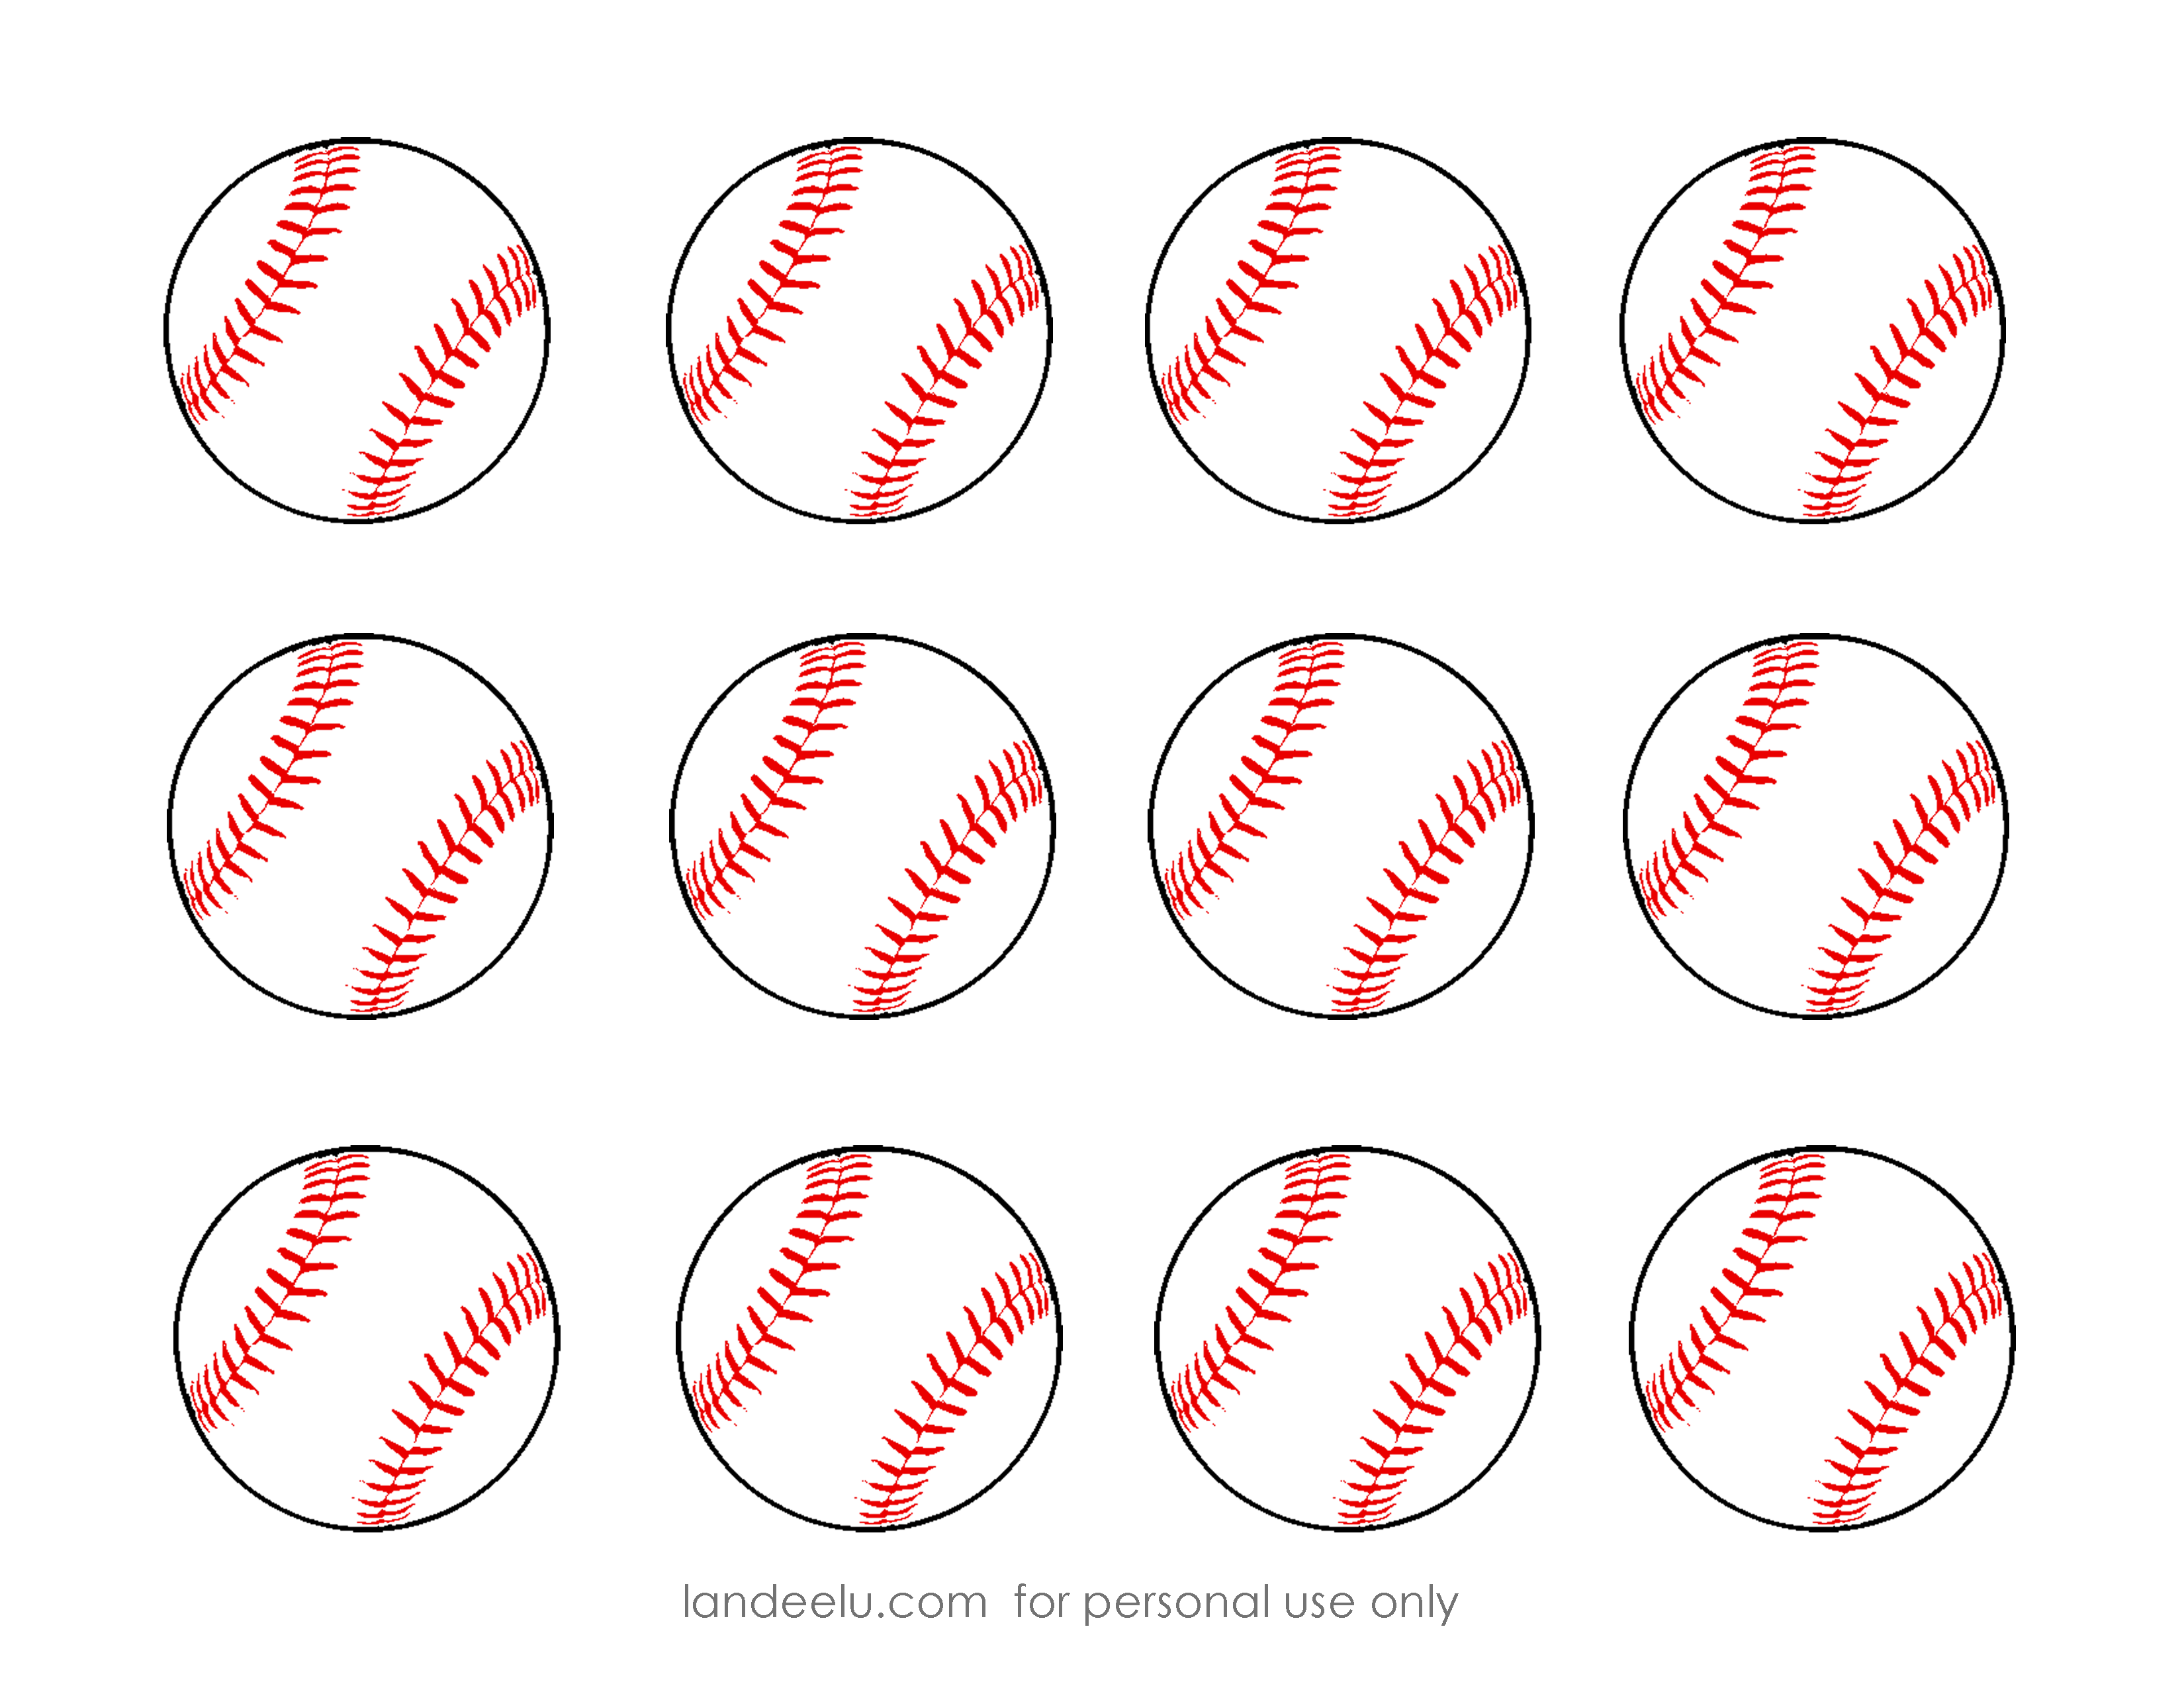 hight resolution of free printable baseball clip art images inch circle punch or scissors